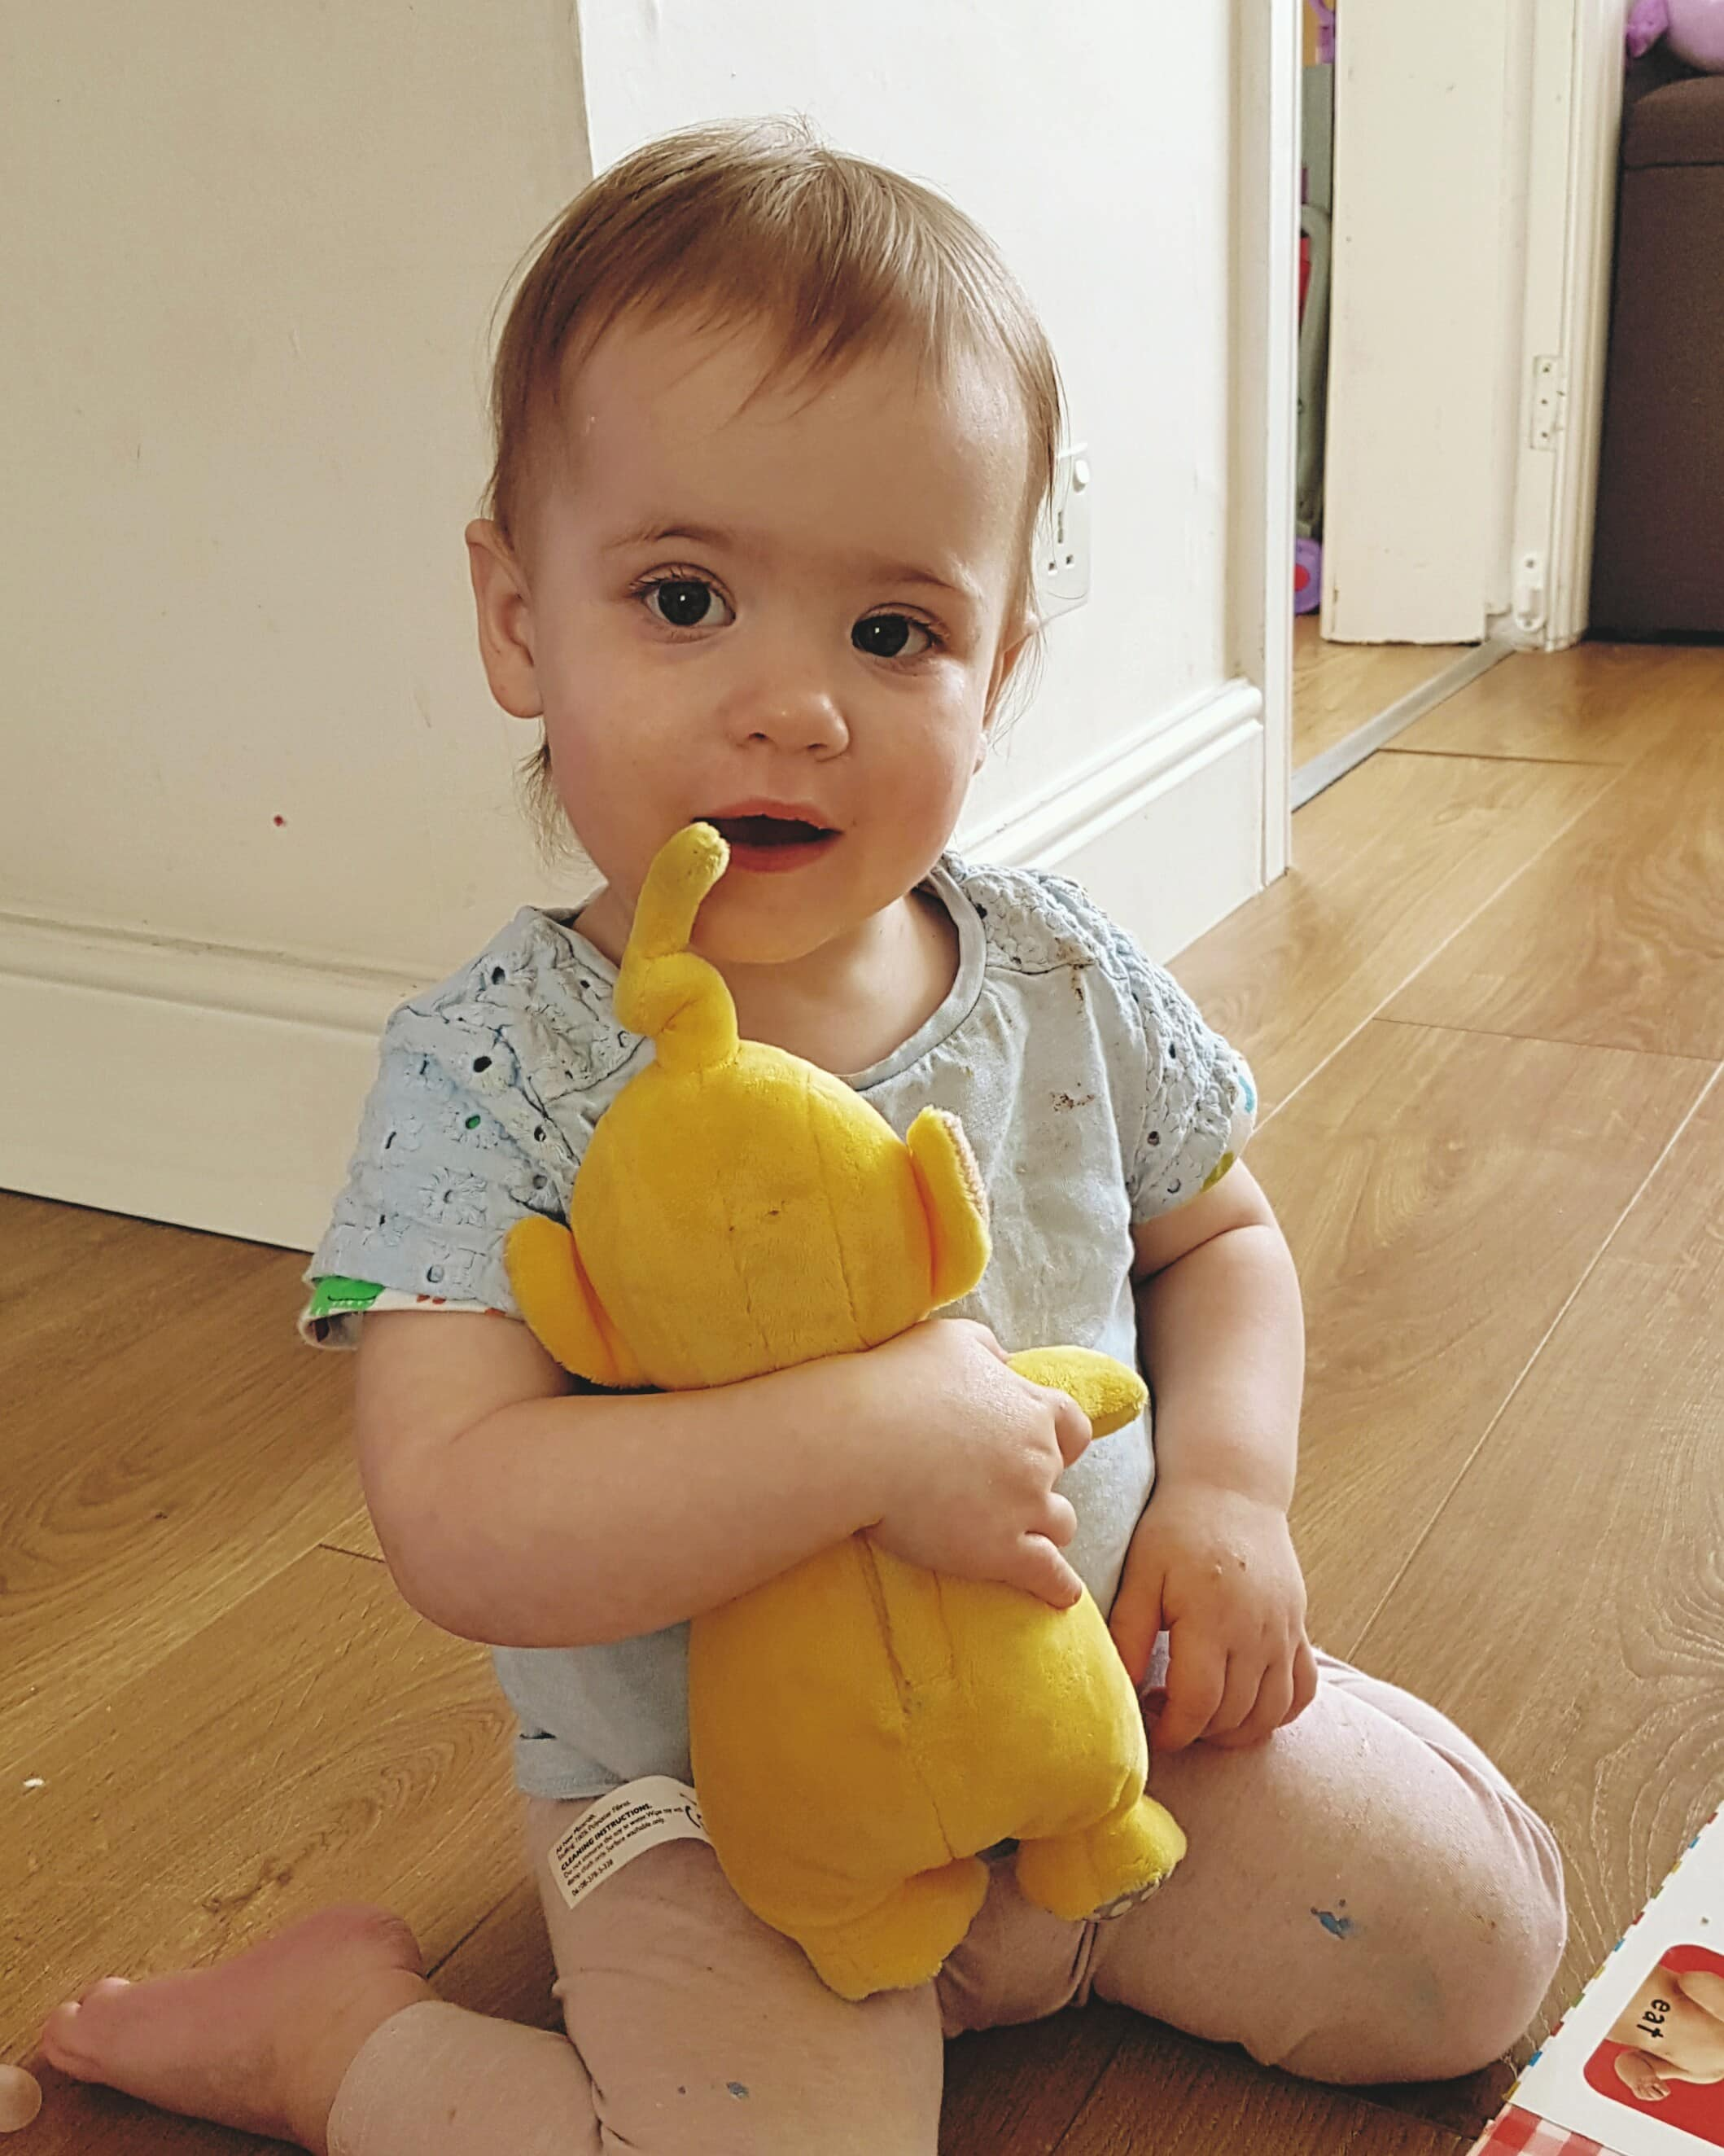 baby holding yellow teletubbies toy